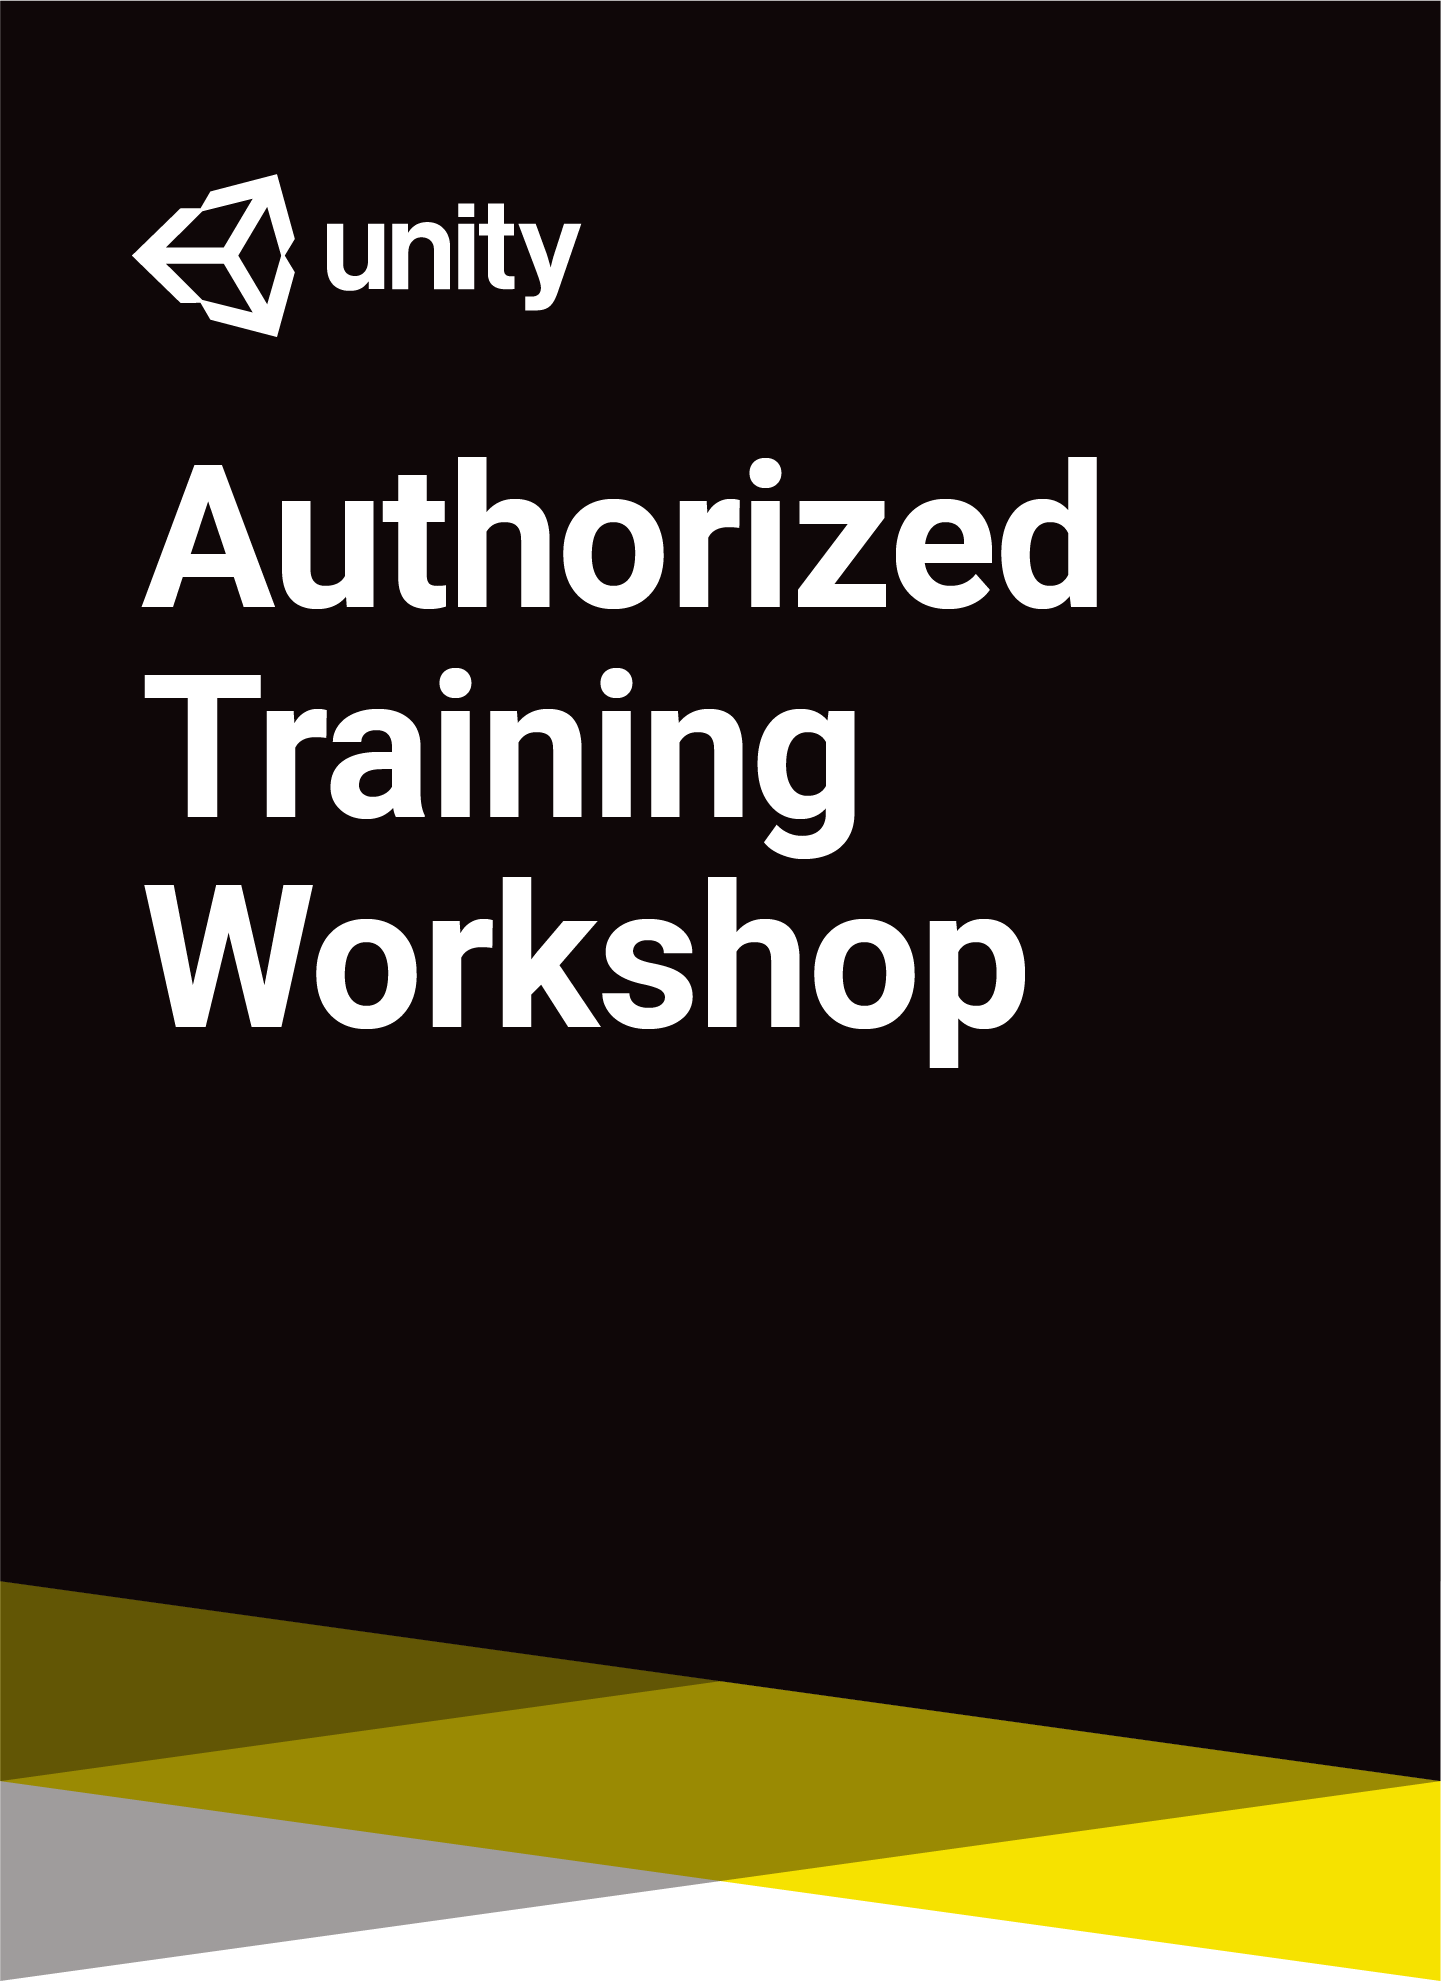 Unity Authorized Workshop